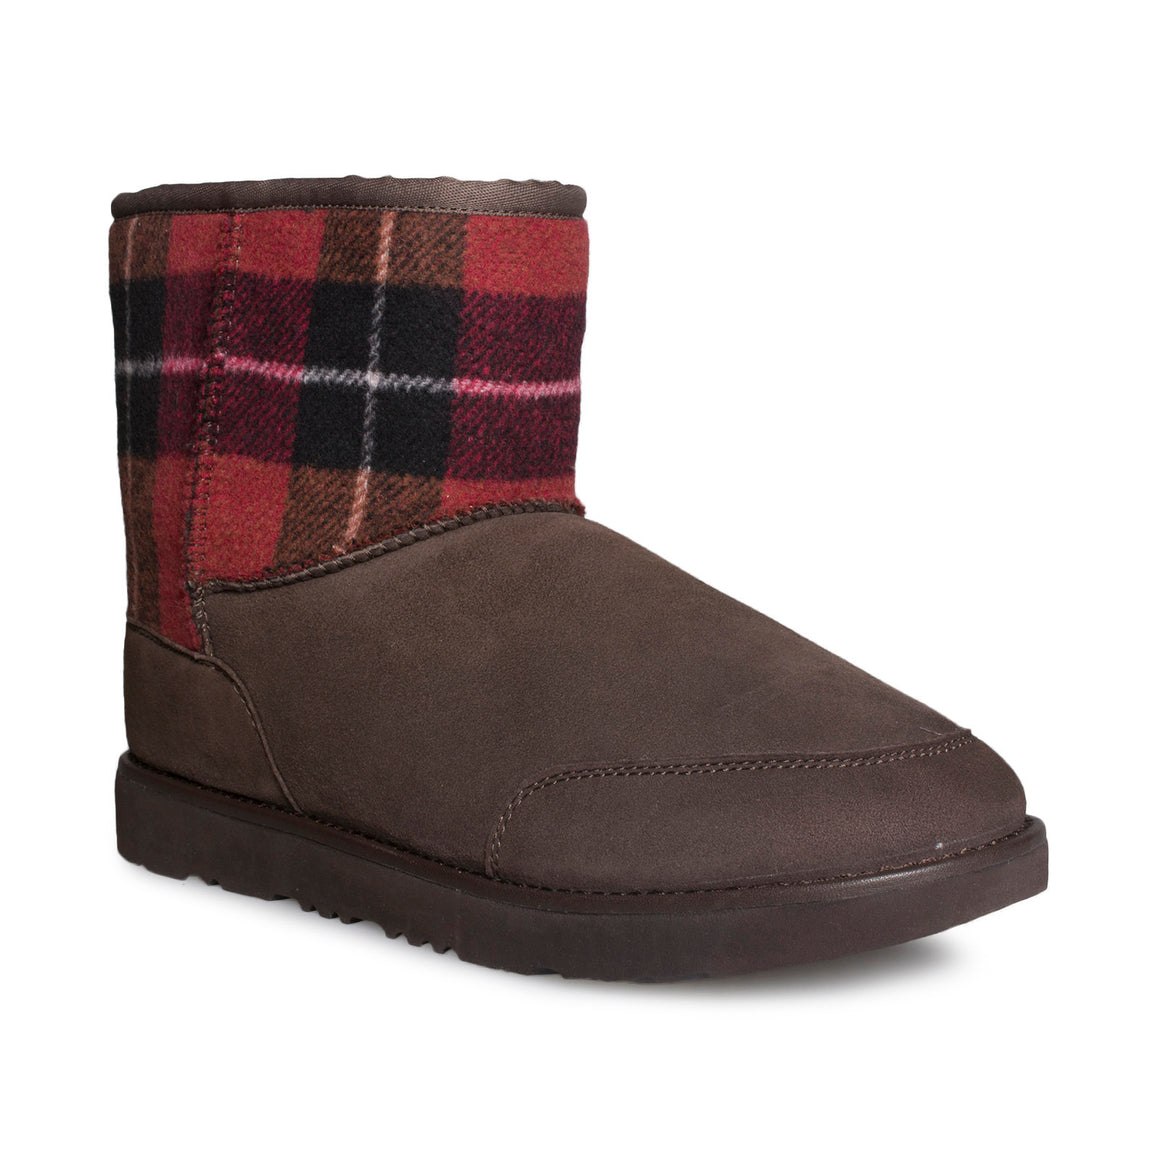 UGG Phillip Lim Classic Mini Flannel Check Boots - Men's